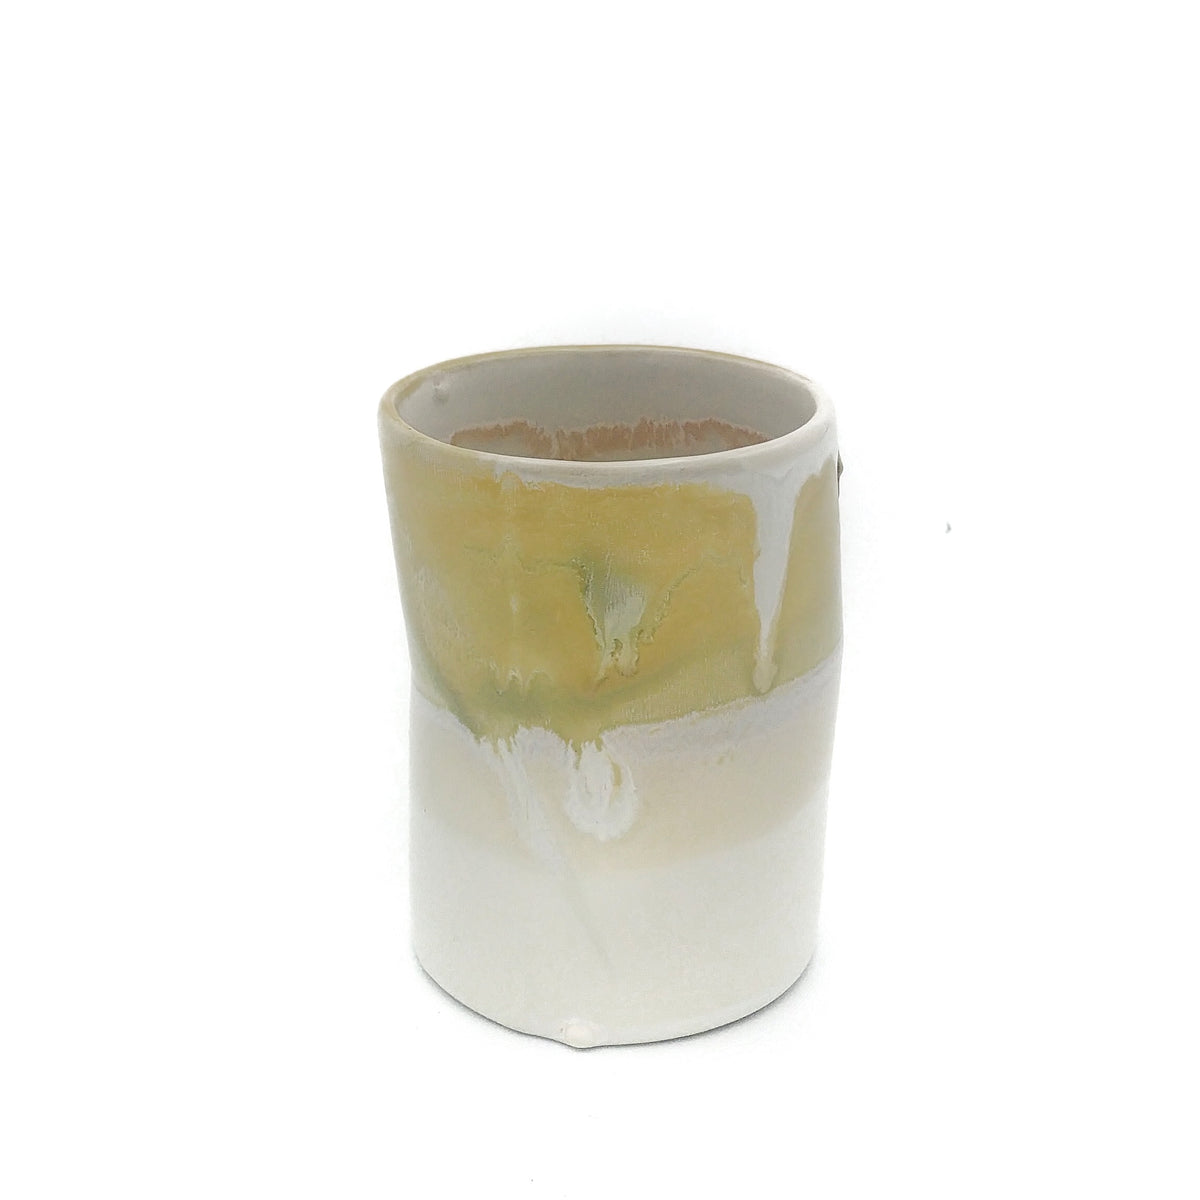 Kaolin-gudnyhaf-porcelain coffiecup/glass. Color white and yellow.